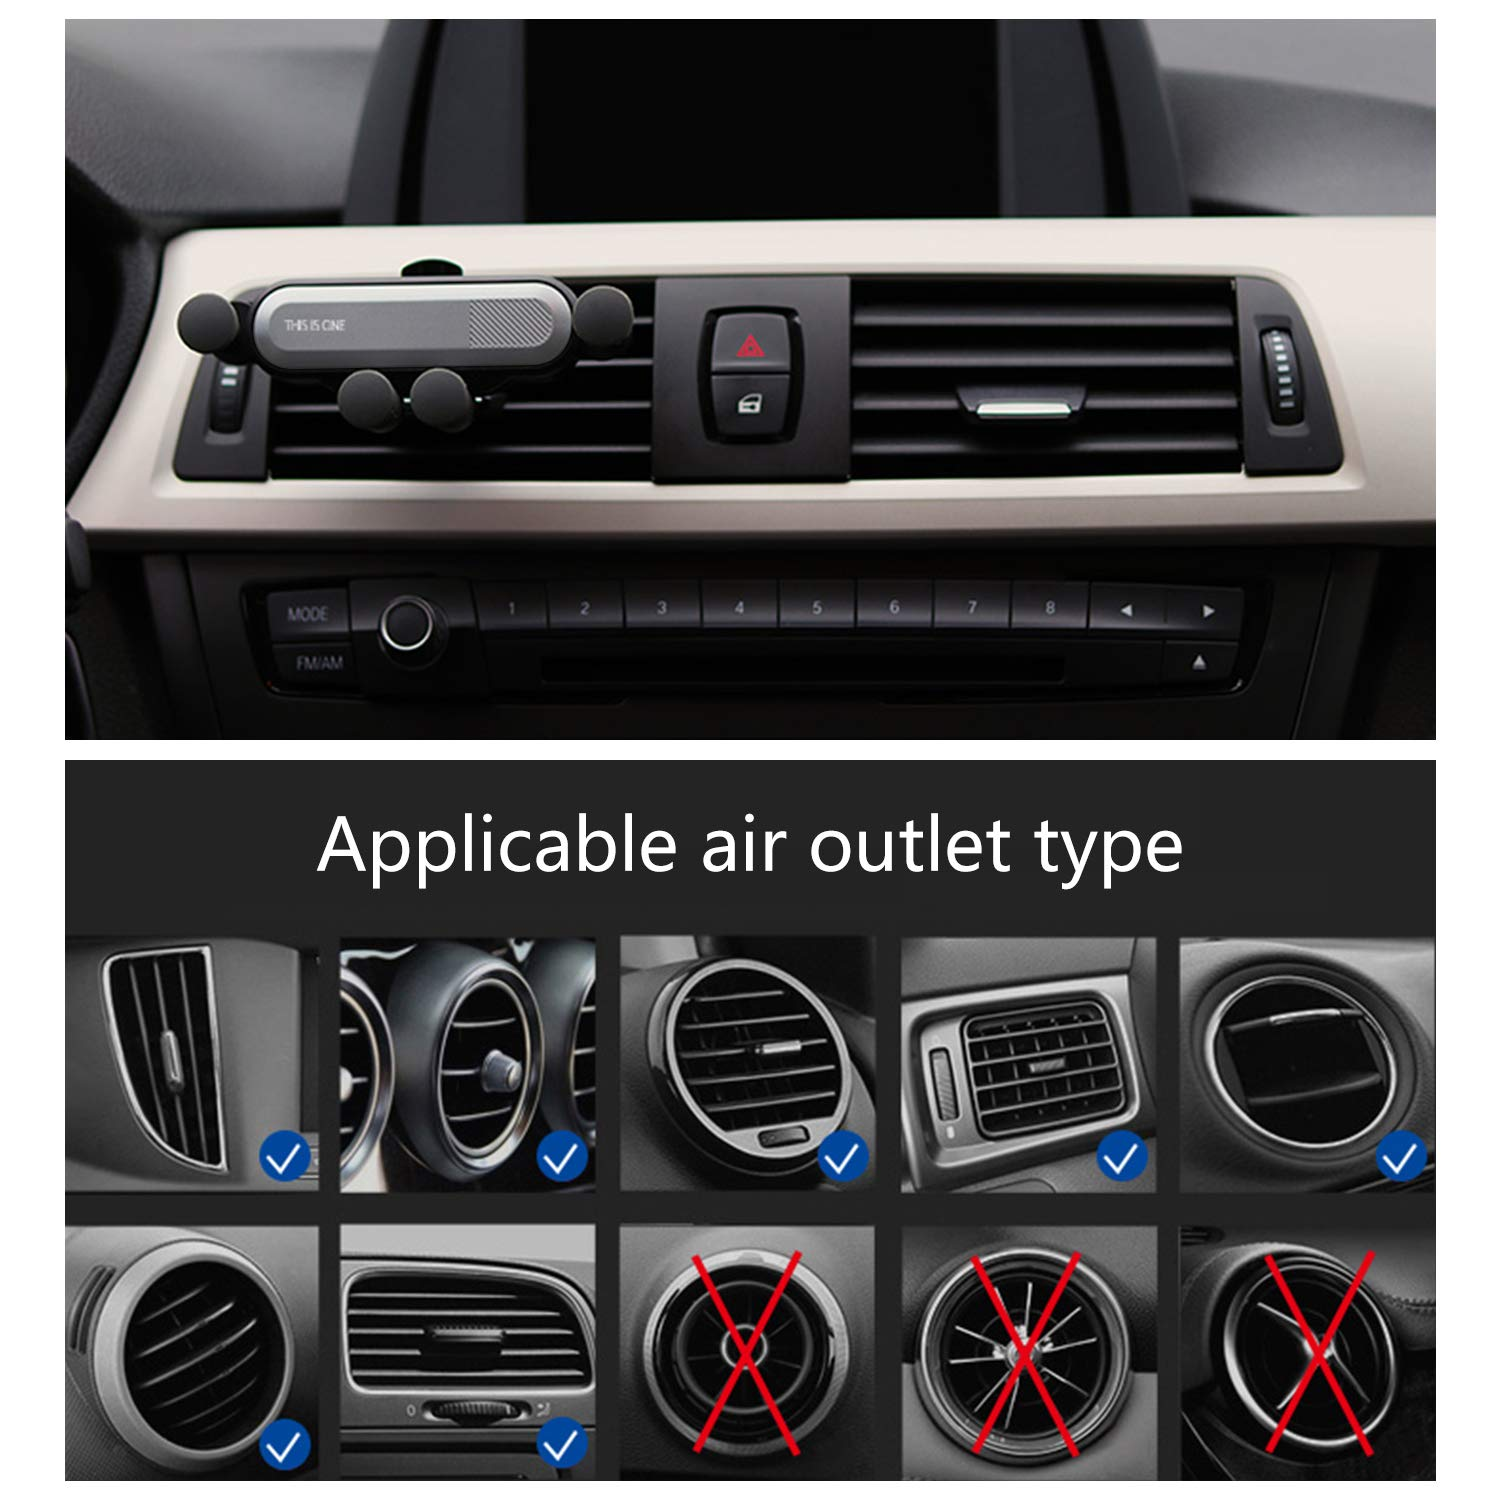 Universal Smartphone Car Air Vent Mount Phone Holder Gradle Super Clamping Stable for iPhone Xs XS Max X 8 8 Plus 7 7 Plus SE 6s 6 Plus 6 Samsung LG Nexus Sony GPS Tablets ZXK CO Car Phone Mount